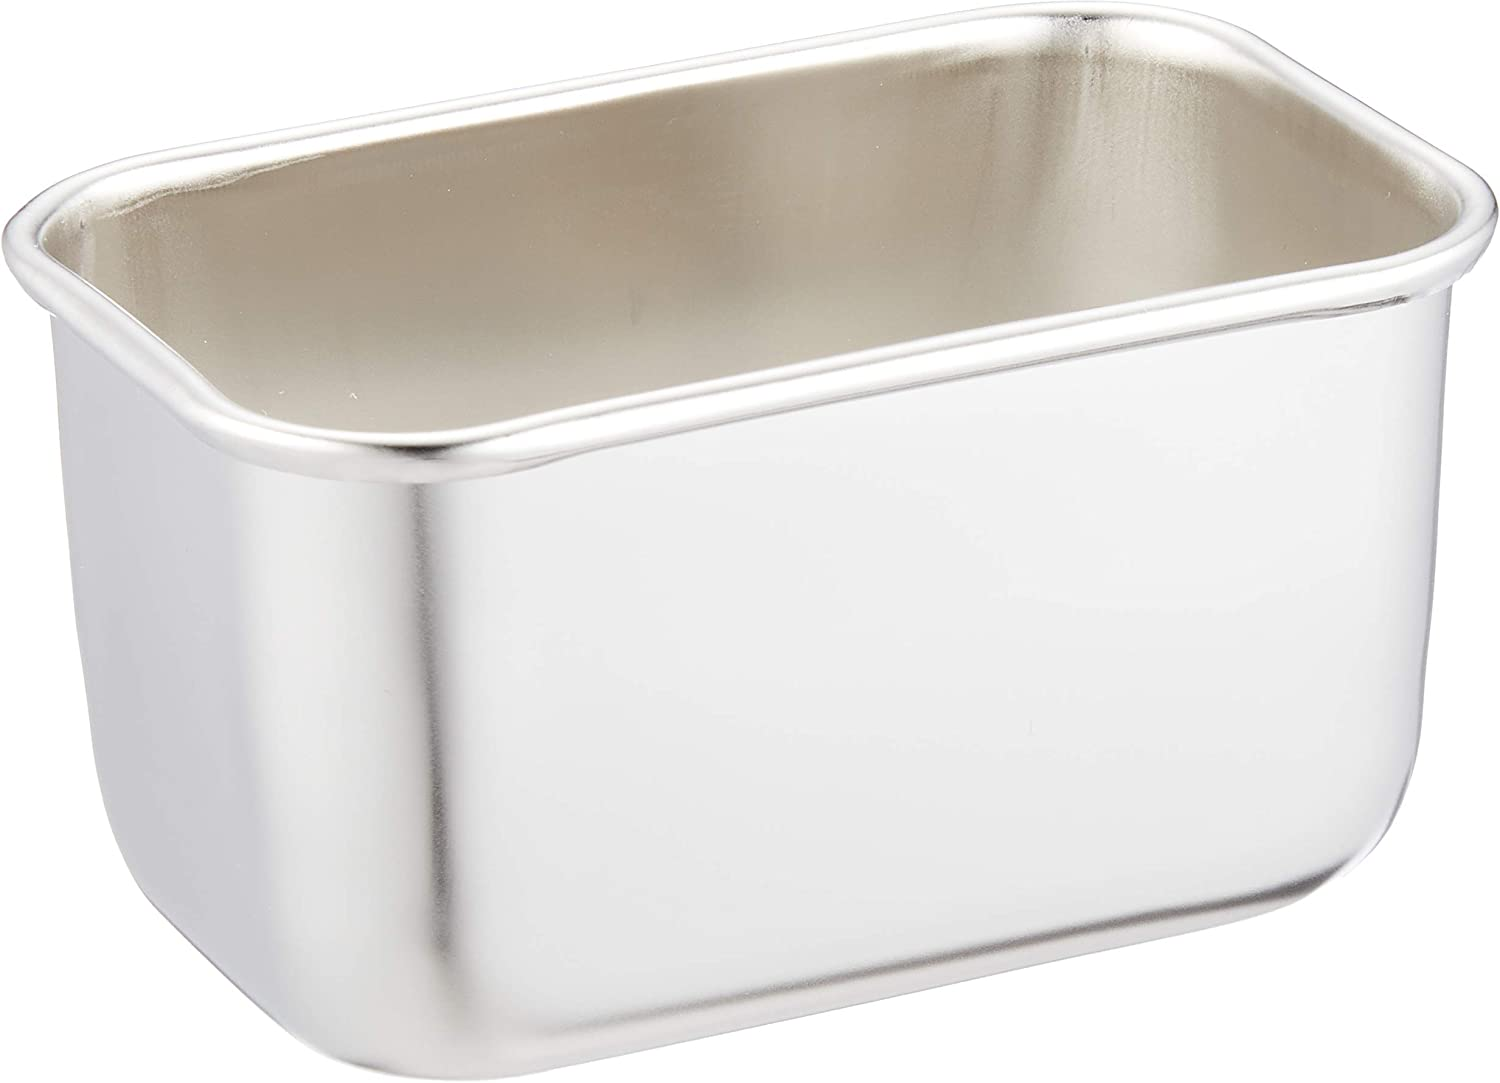 Stainless Steel Deep Dish Food Storage Container No. 00